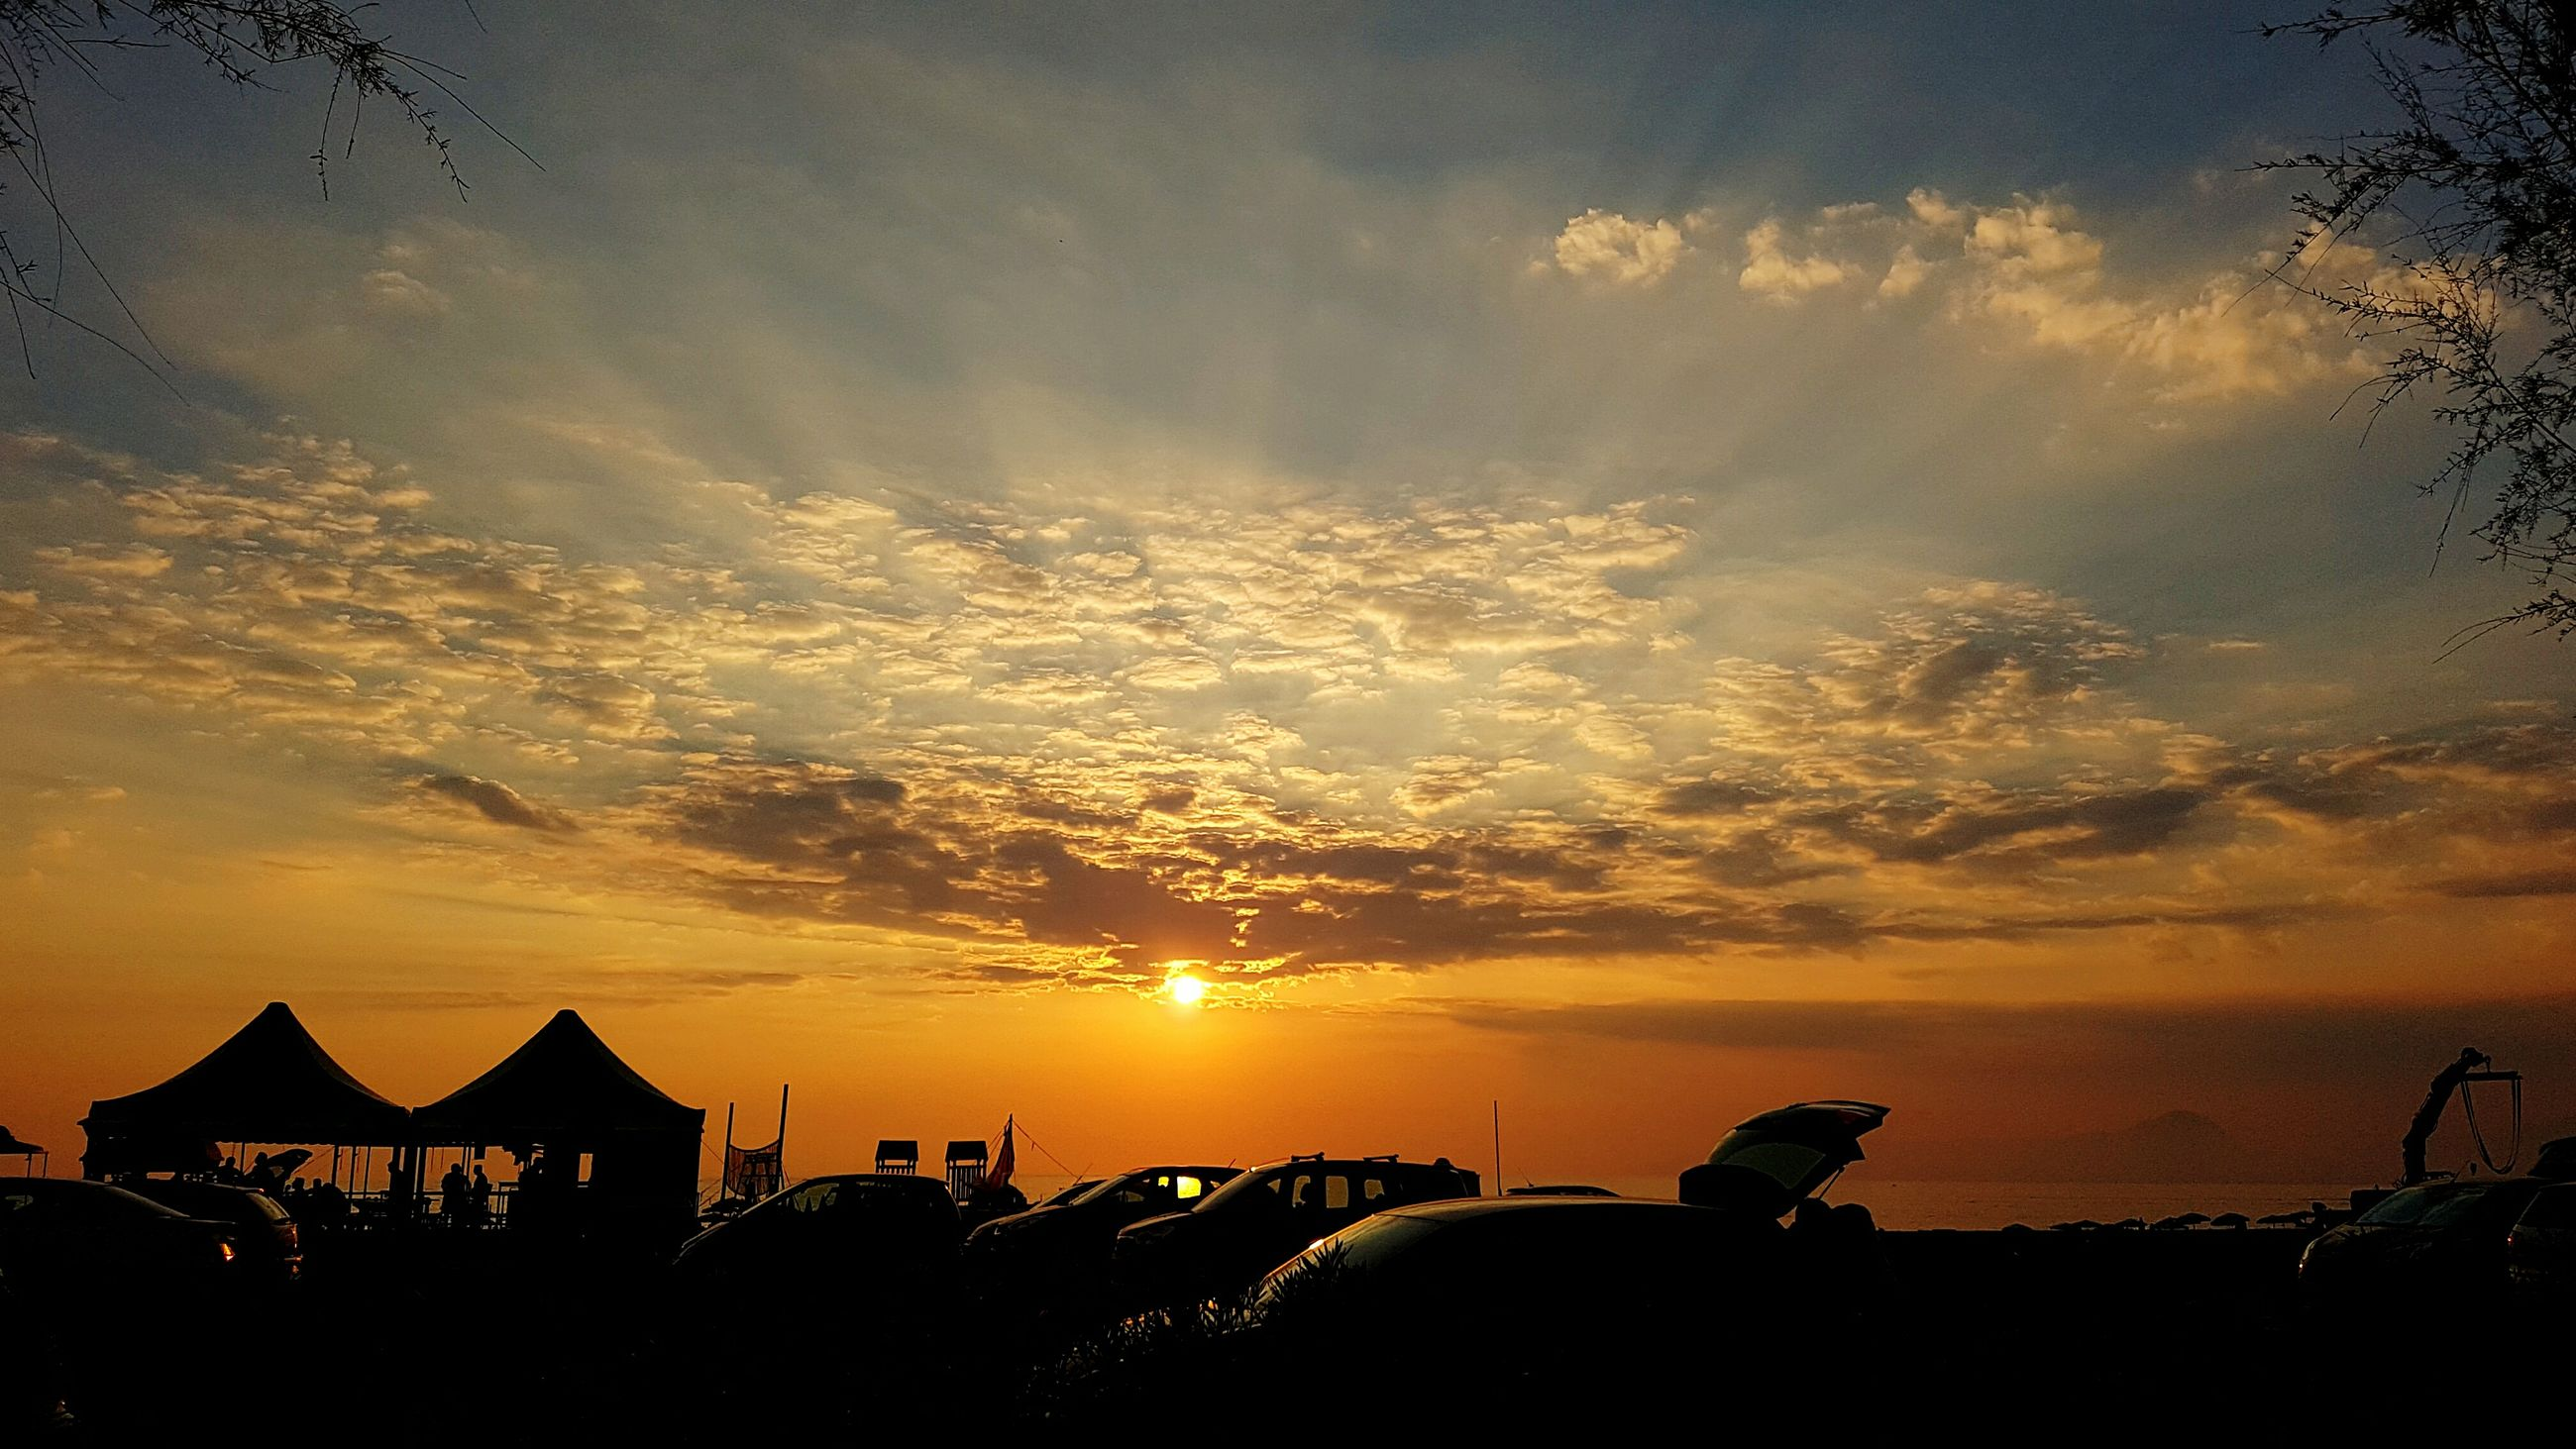 sunset, silhouette, vacations, tranquil scene, beach, scenics, sun, tranquility, sky, idyllic, tourism, thatched roof, orange color, cloud - sky, tourist, architecture, sea, cloud, beauty in nature, water, dramatic sky, atmosphere, majestic, sunshade, nature, outdoors, moody sky, dark, atmospheric mood, back lit